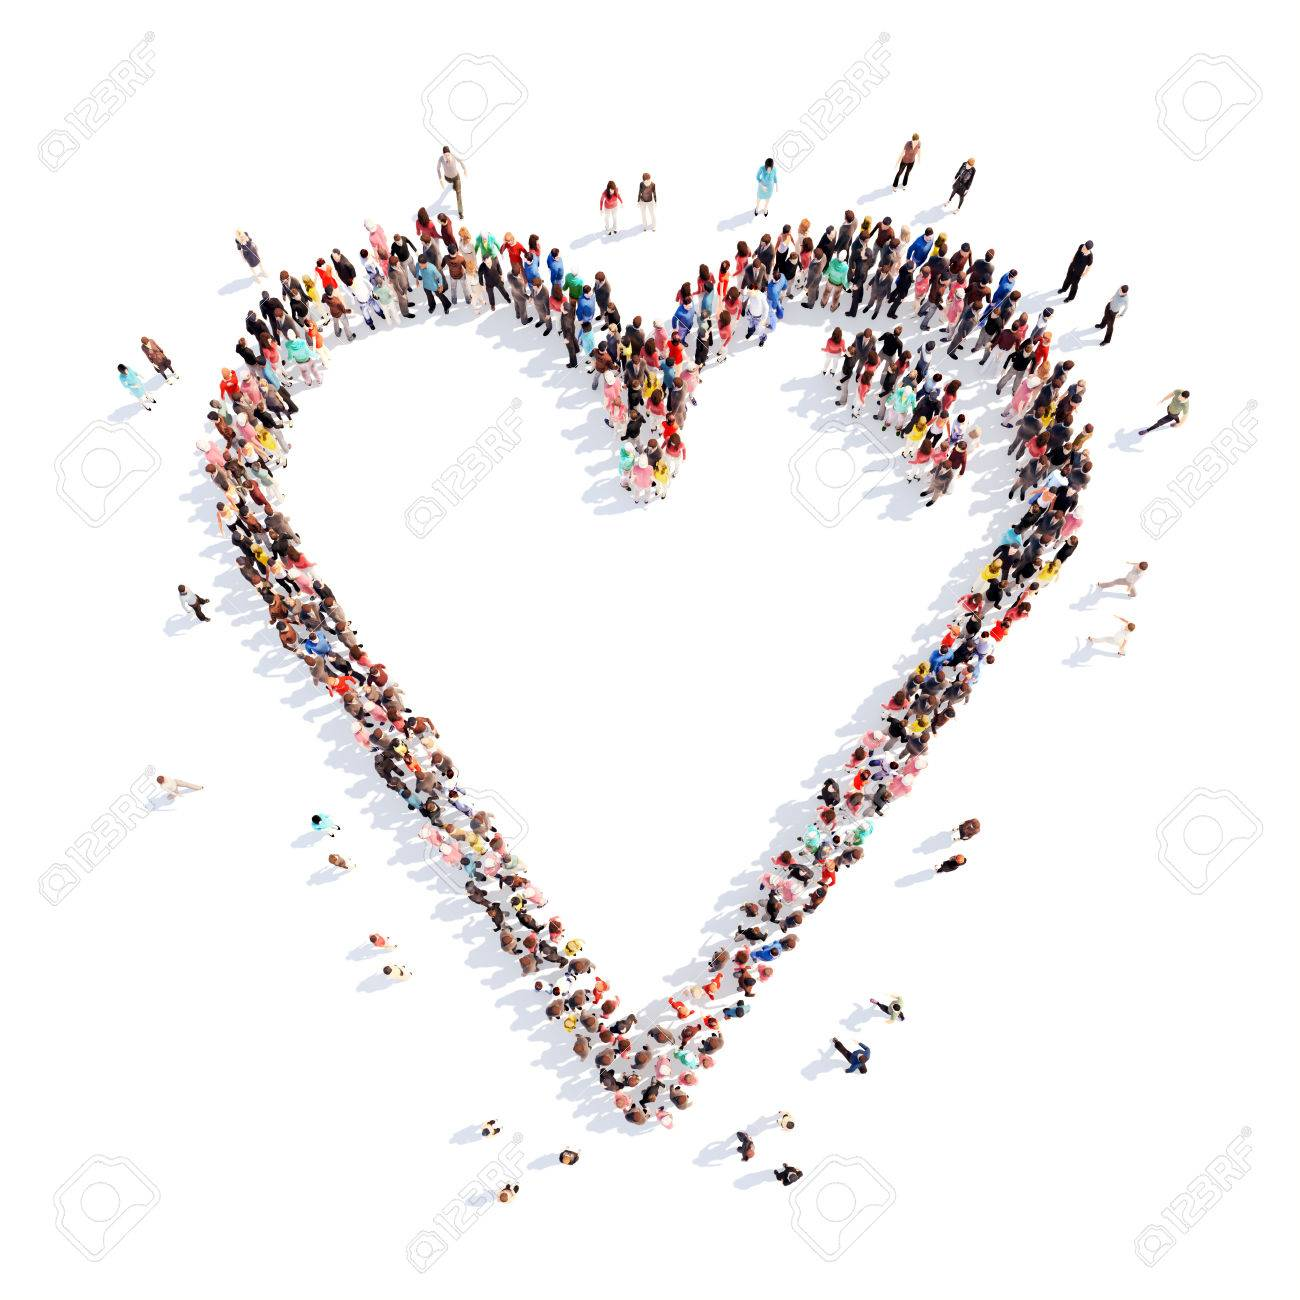 Large group of people in the form of hearts, love. Isolated, white background. - 39494826